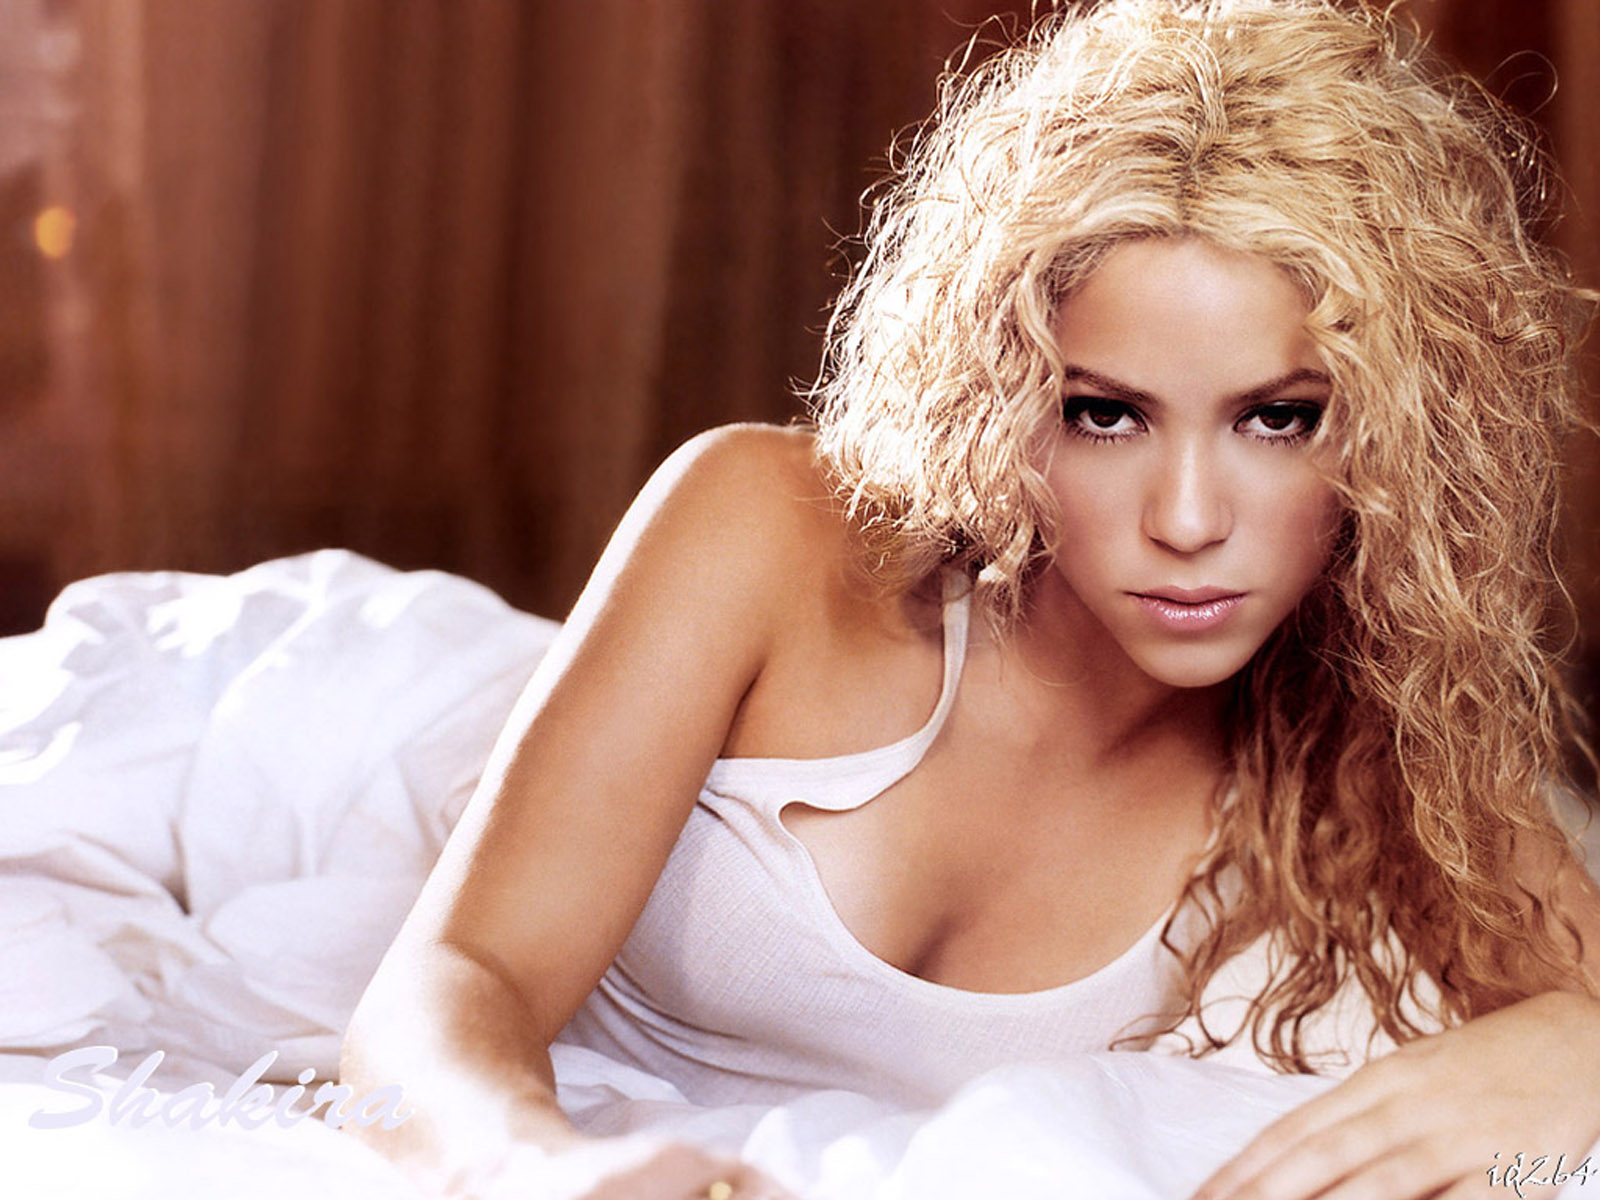 Sweetcouple Shakira Sexy Wallpaper